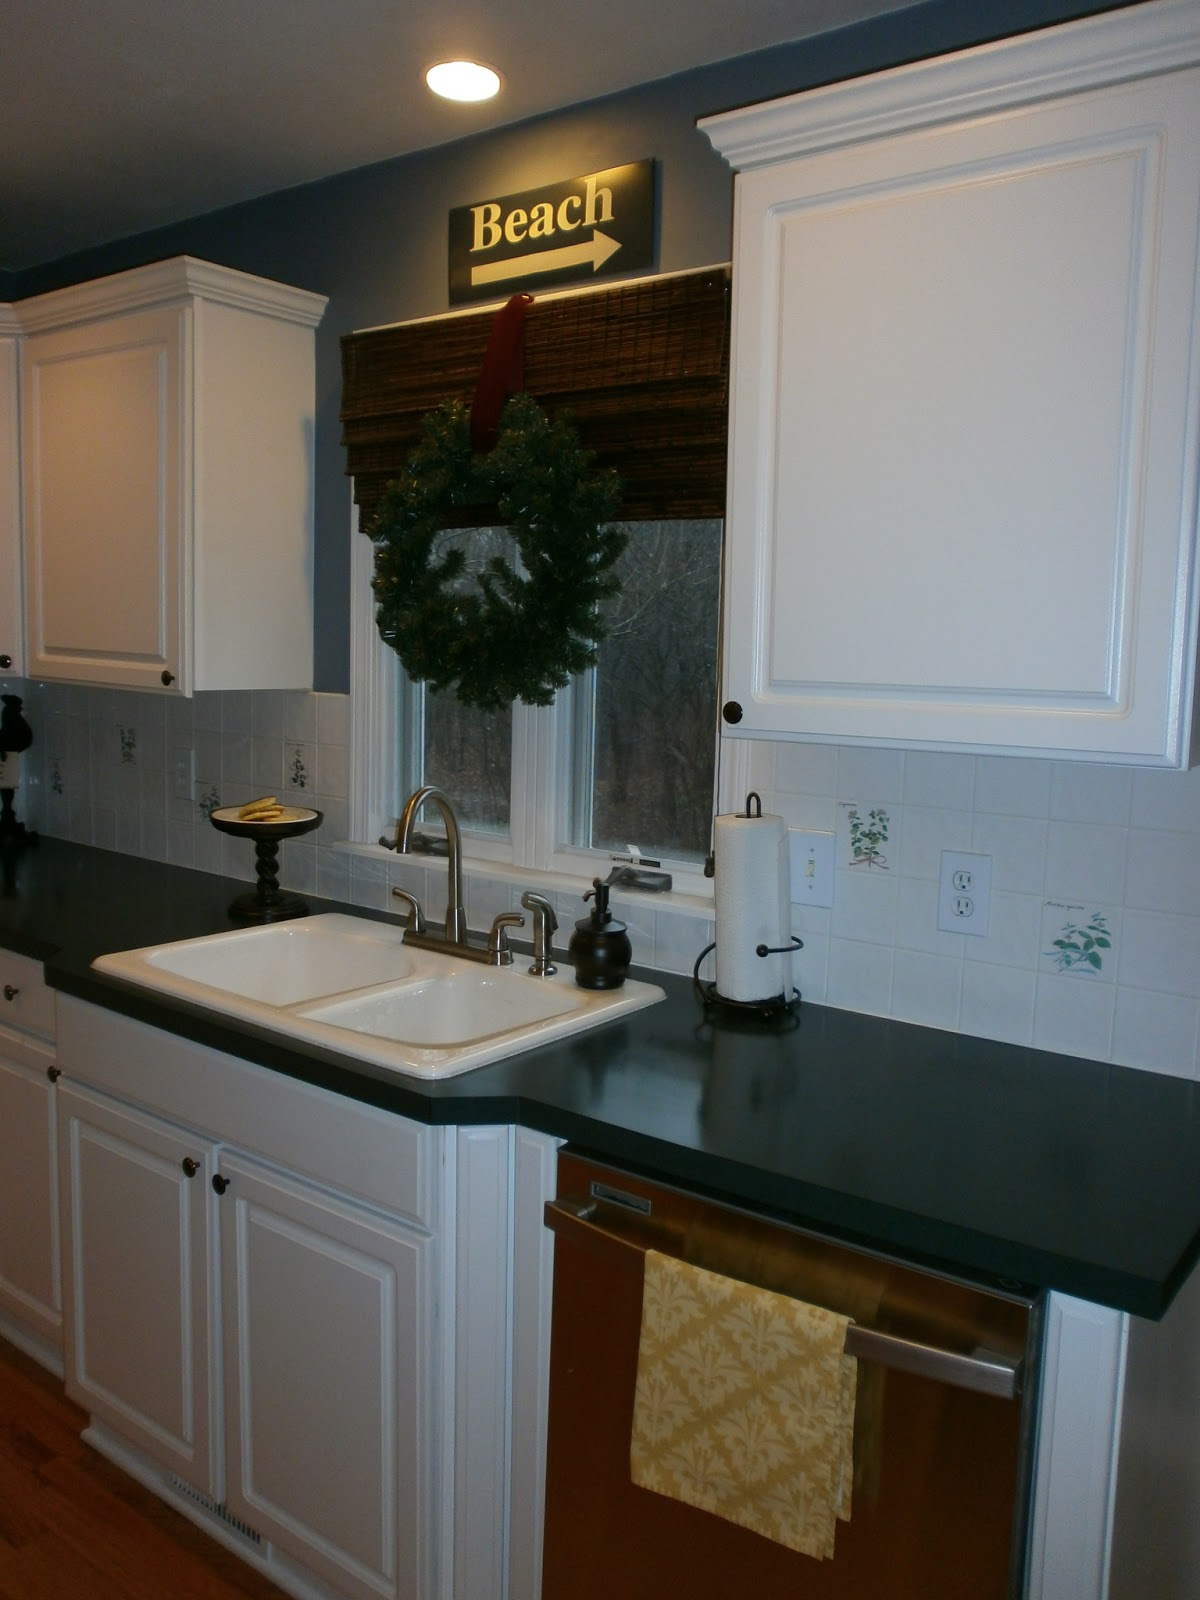 Diy painting a ceramic tile backsplash dailygadgetfo Image collections